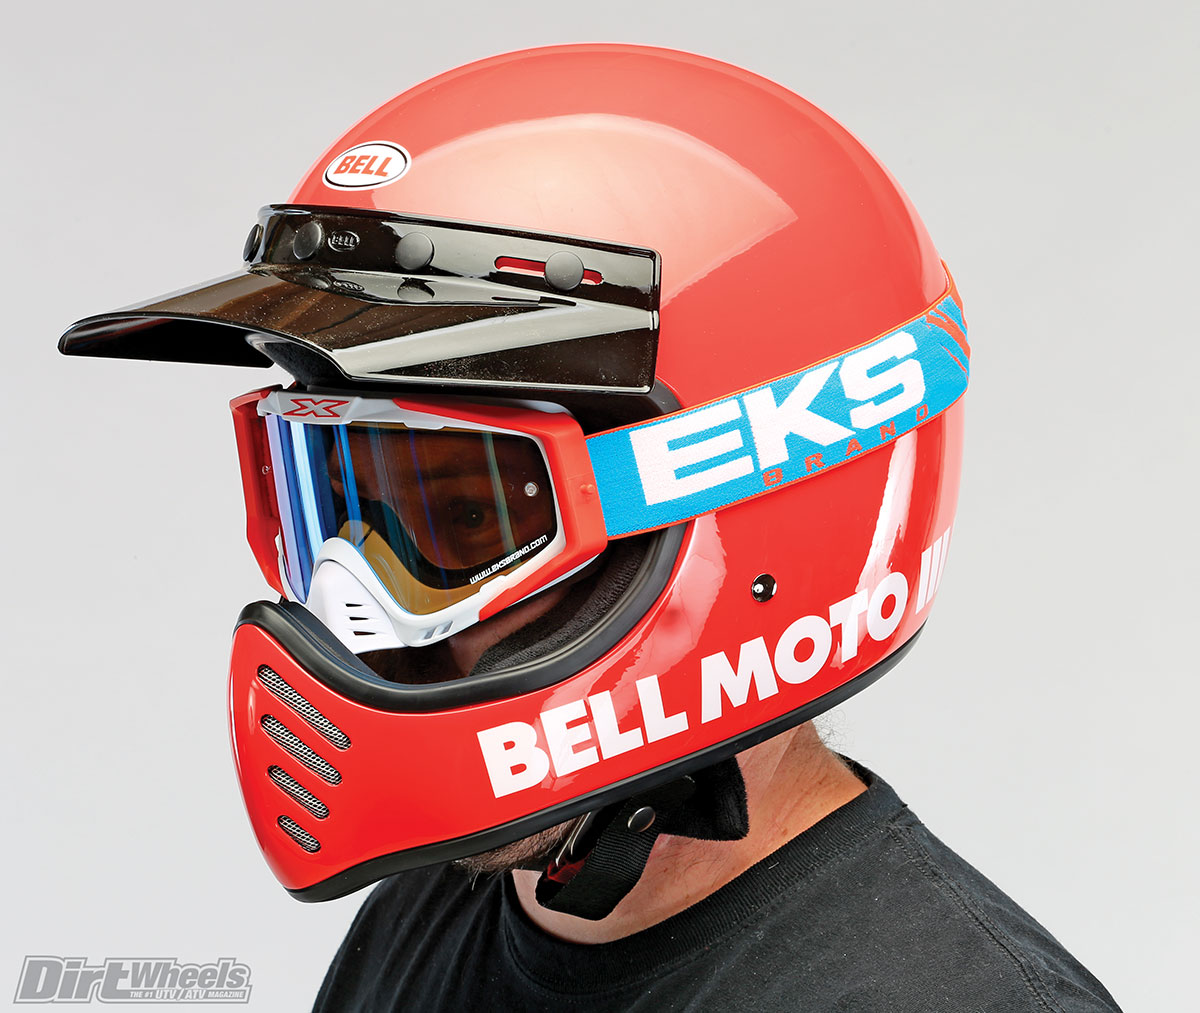 The Bell Moto 3 has made its triumphant return but with modern materials, which means better protection for the rider.